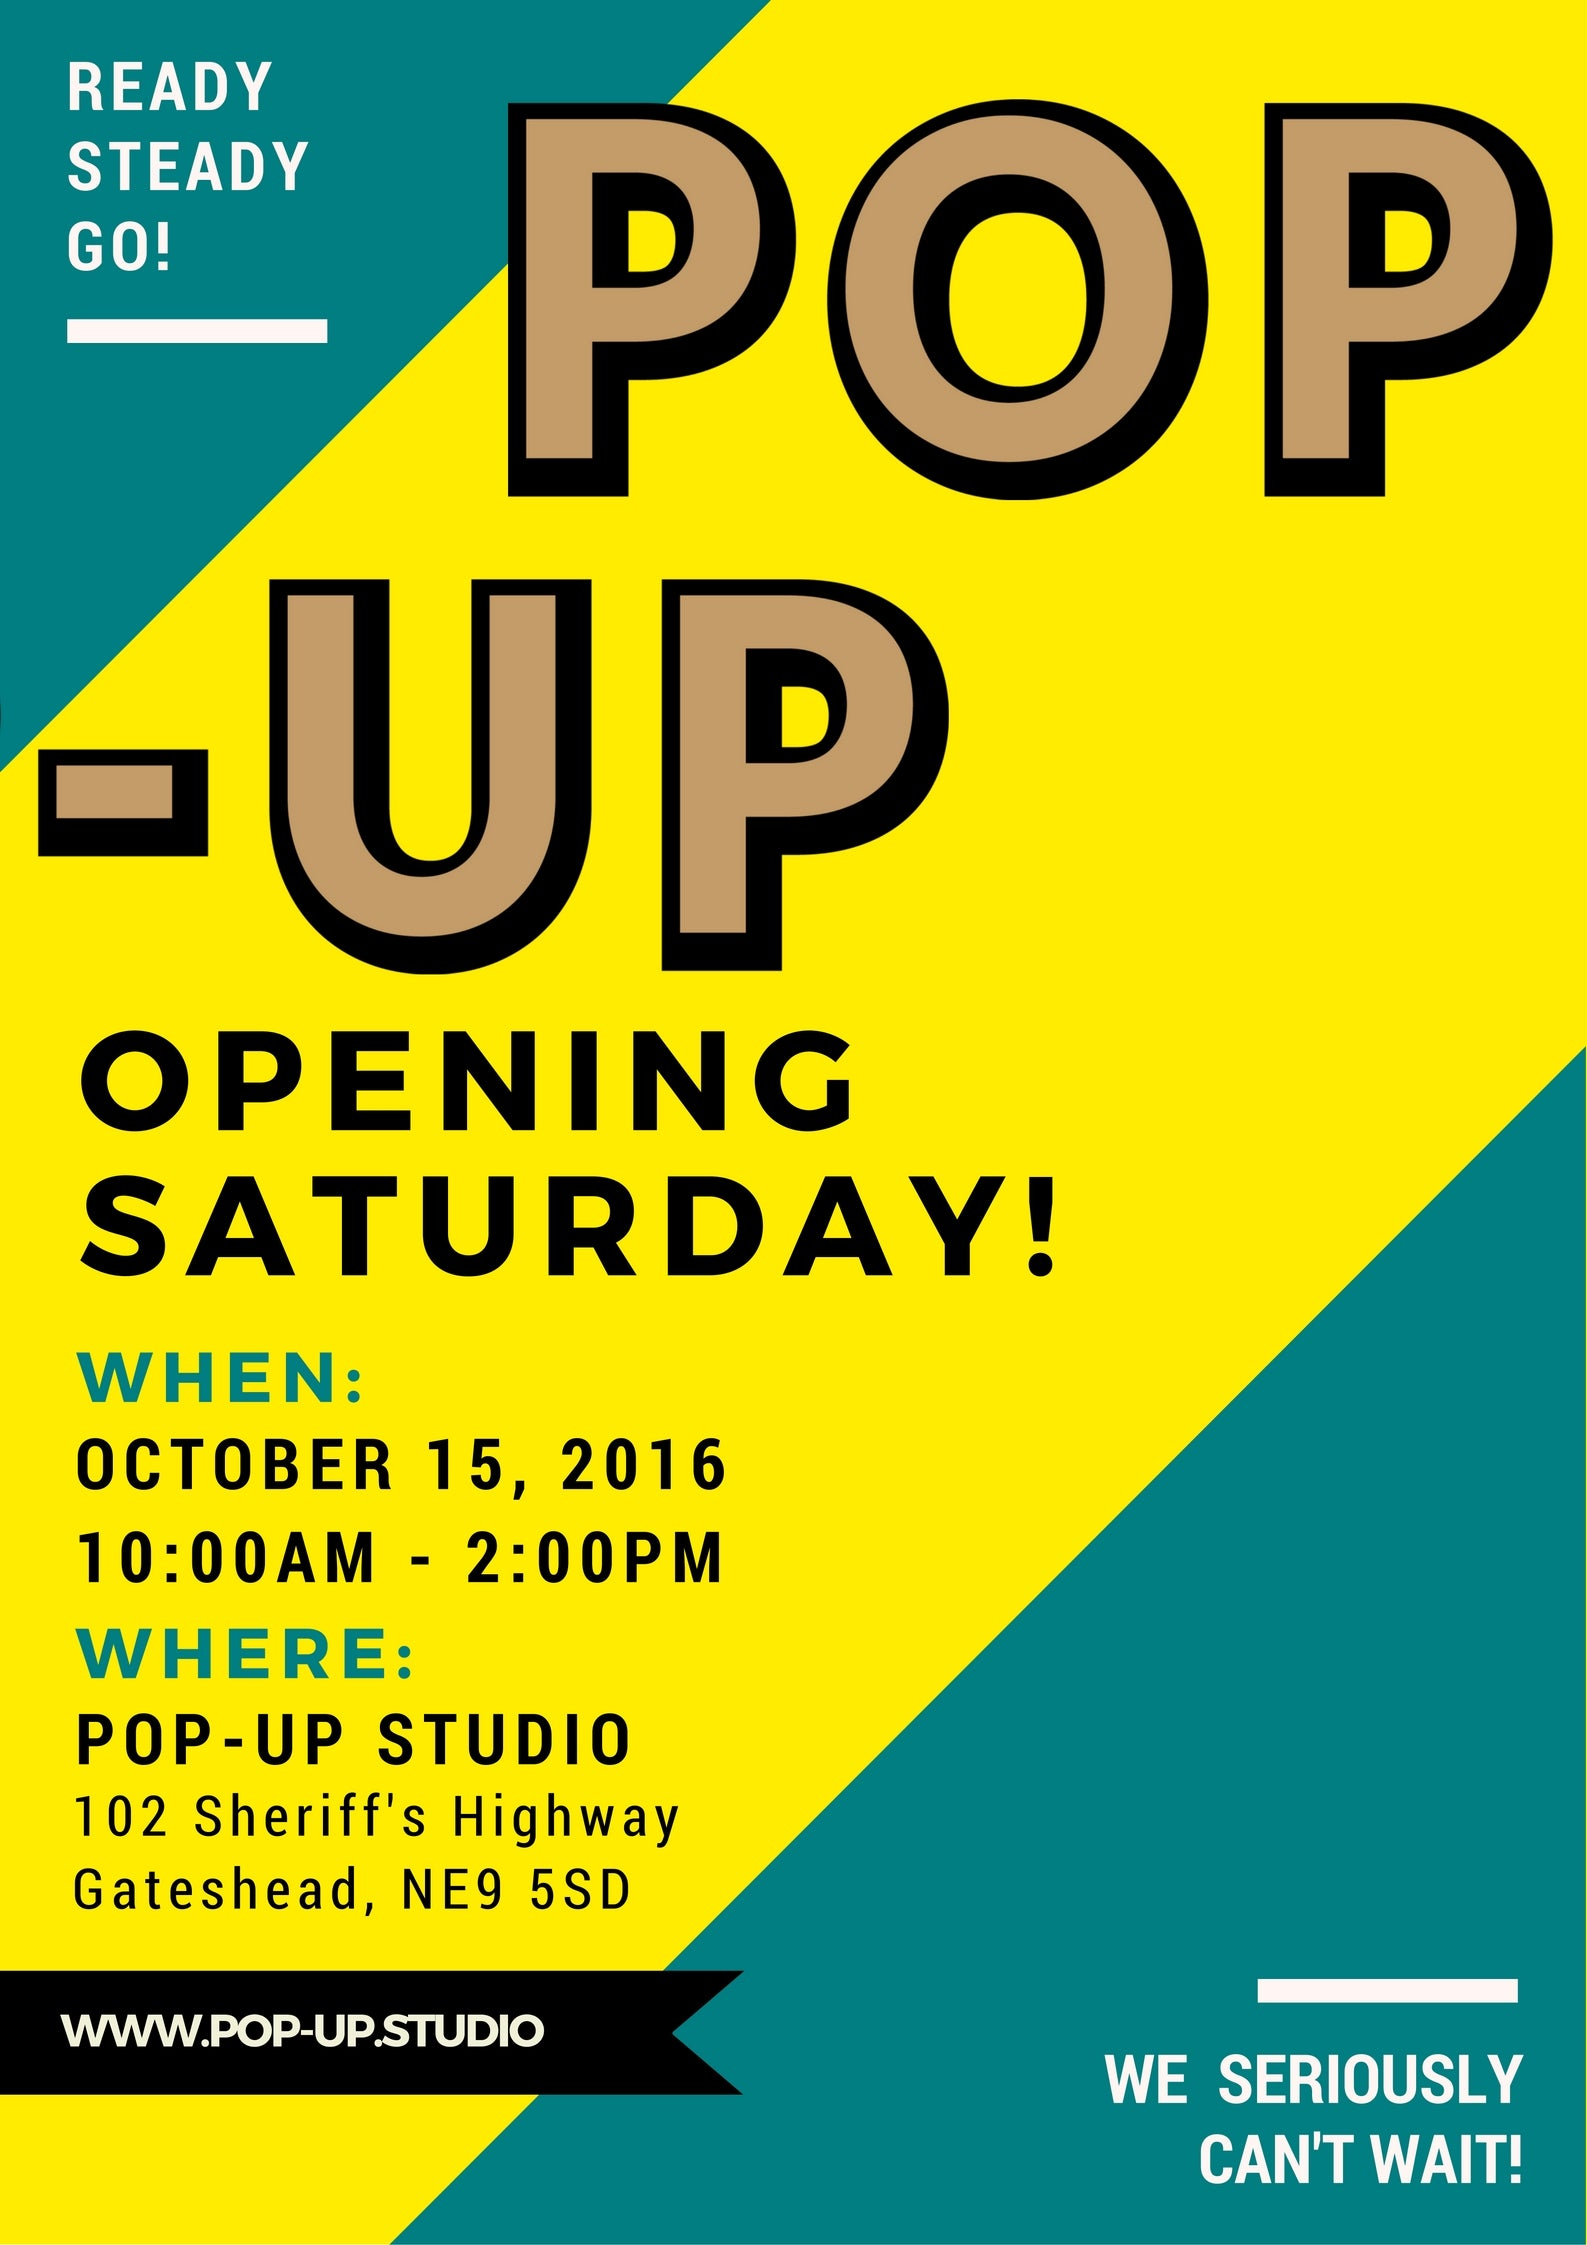 Pop-Up Opening Saturday